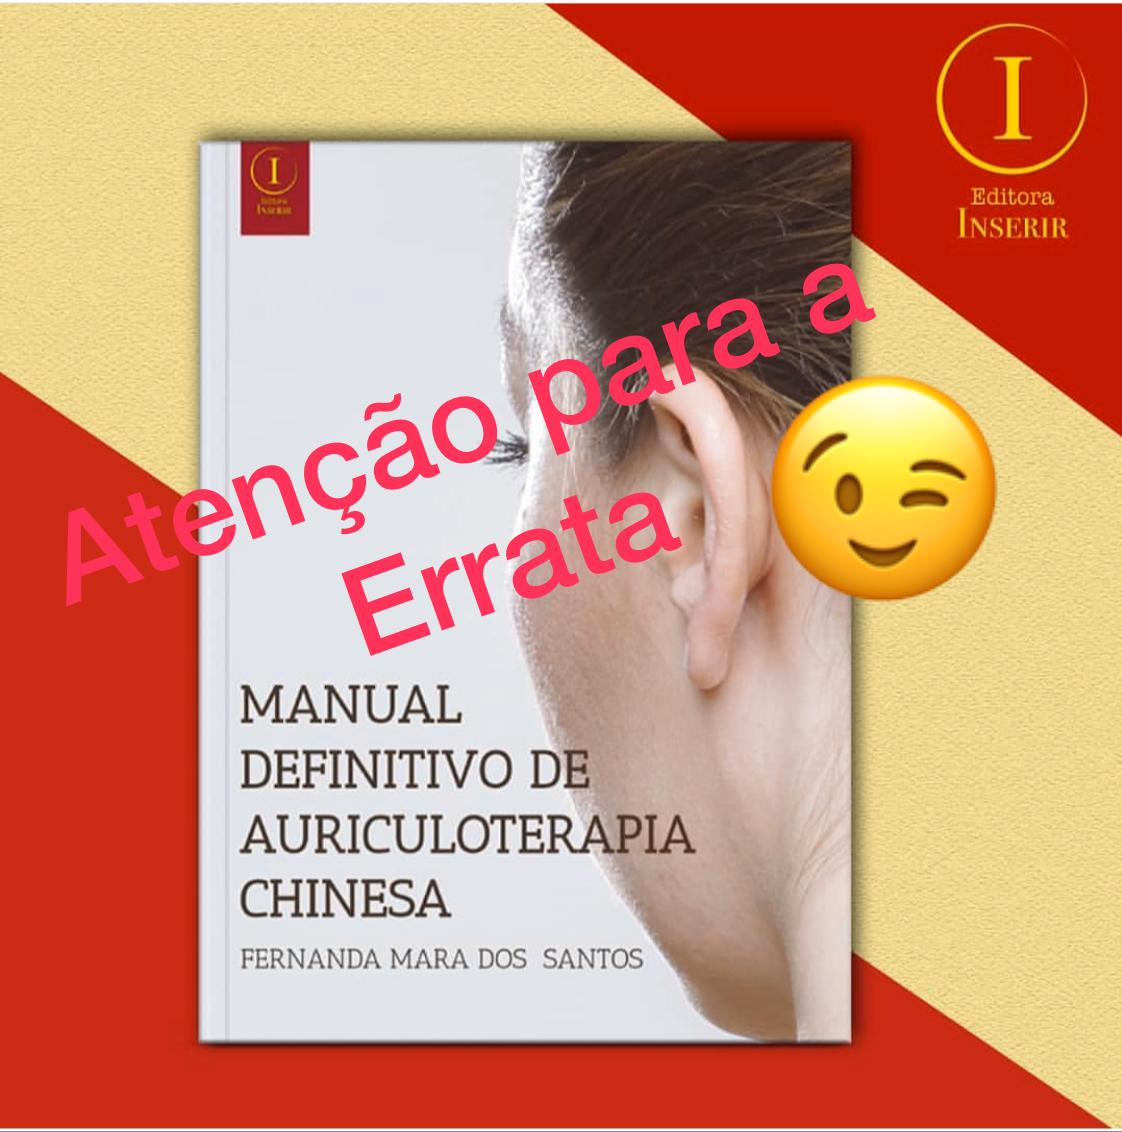 Errata do livro Manual Definitivo de Auriculoterapia Chinesa